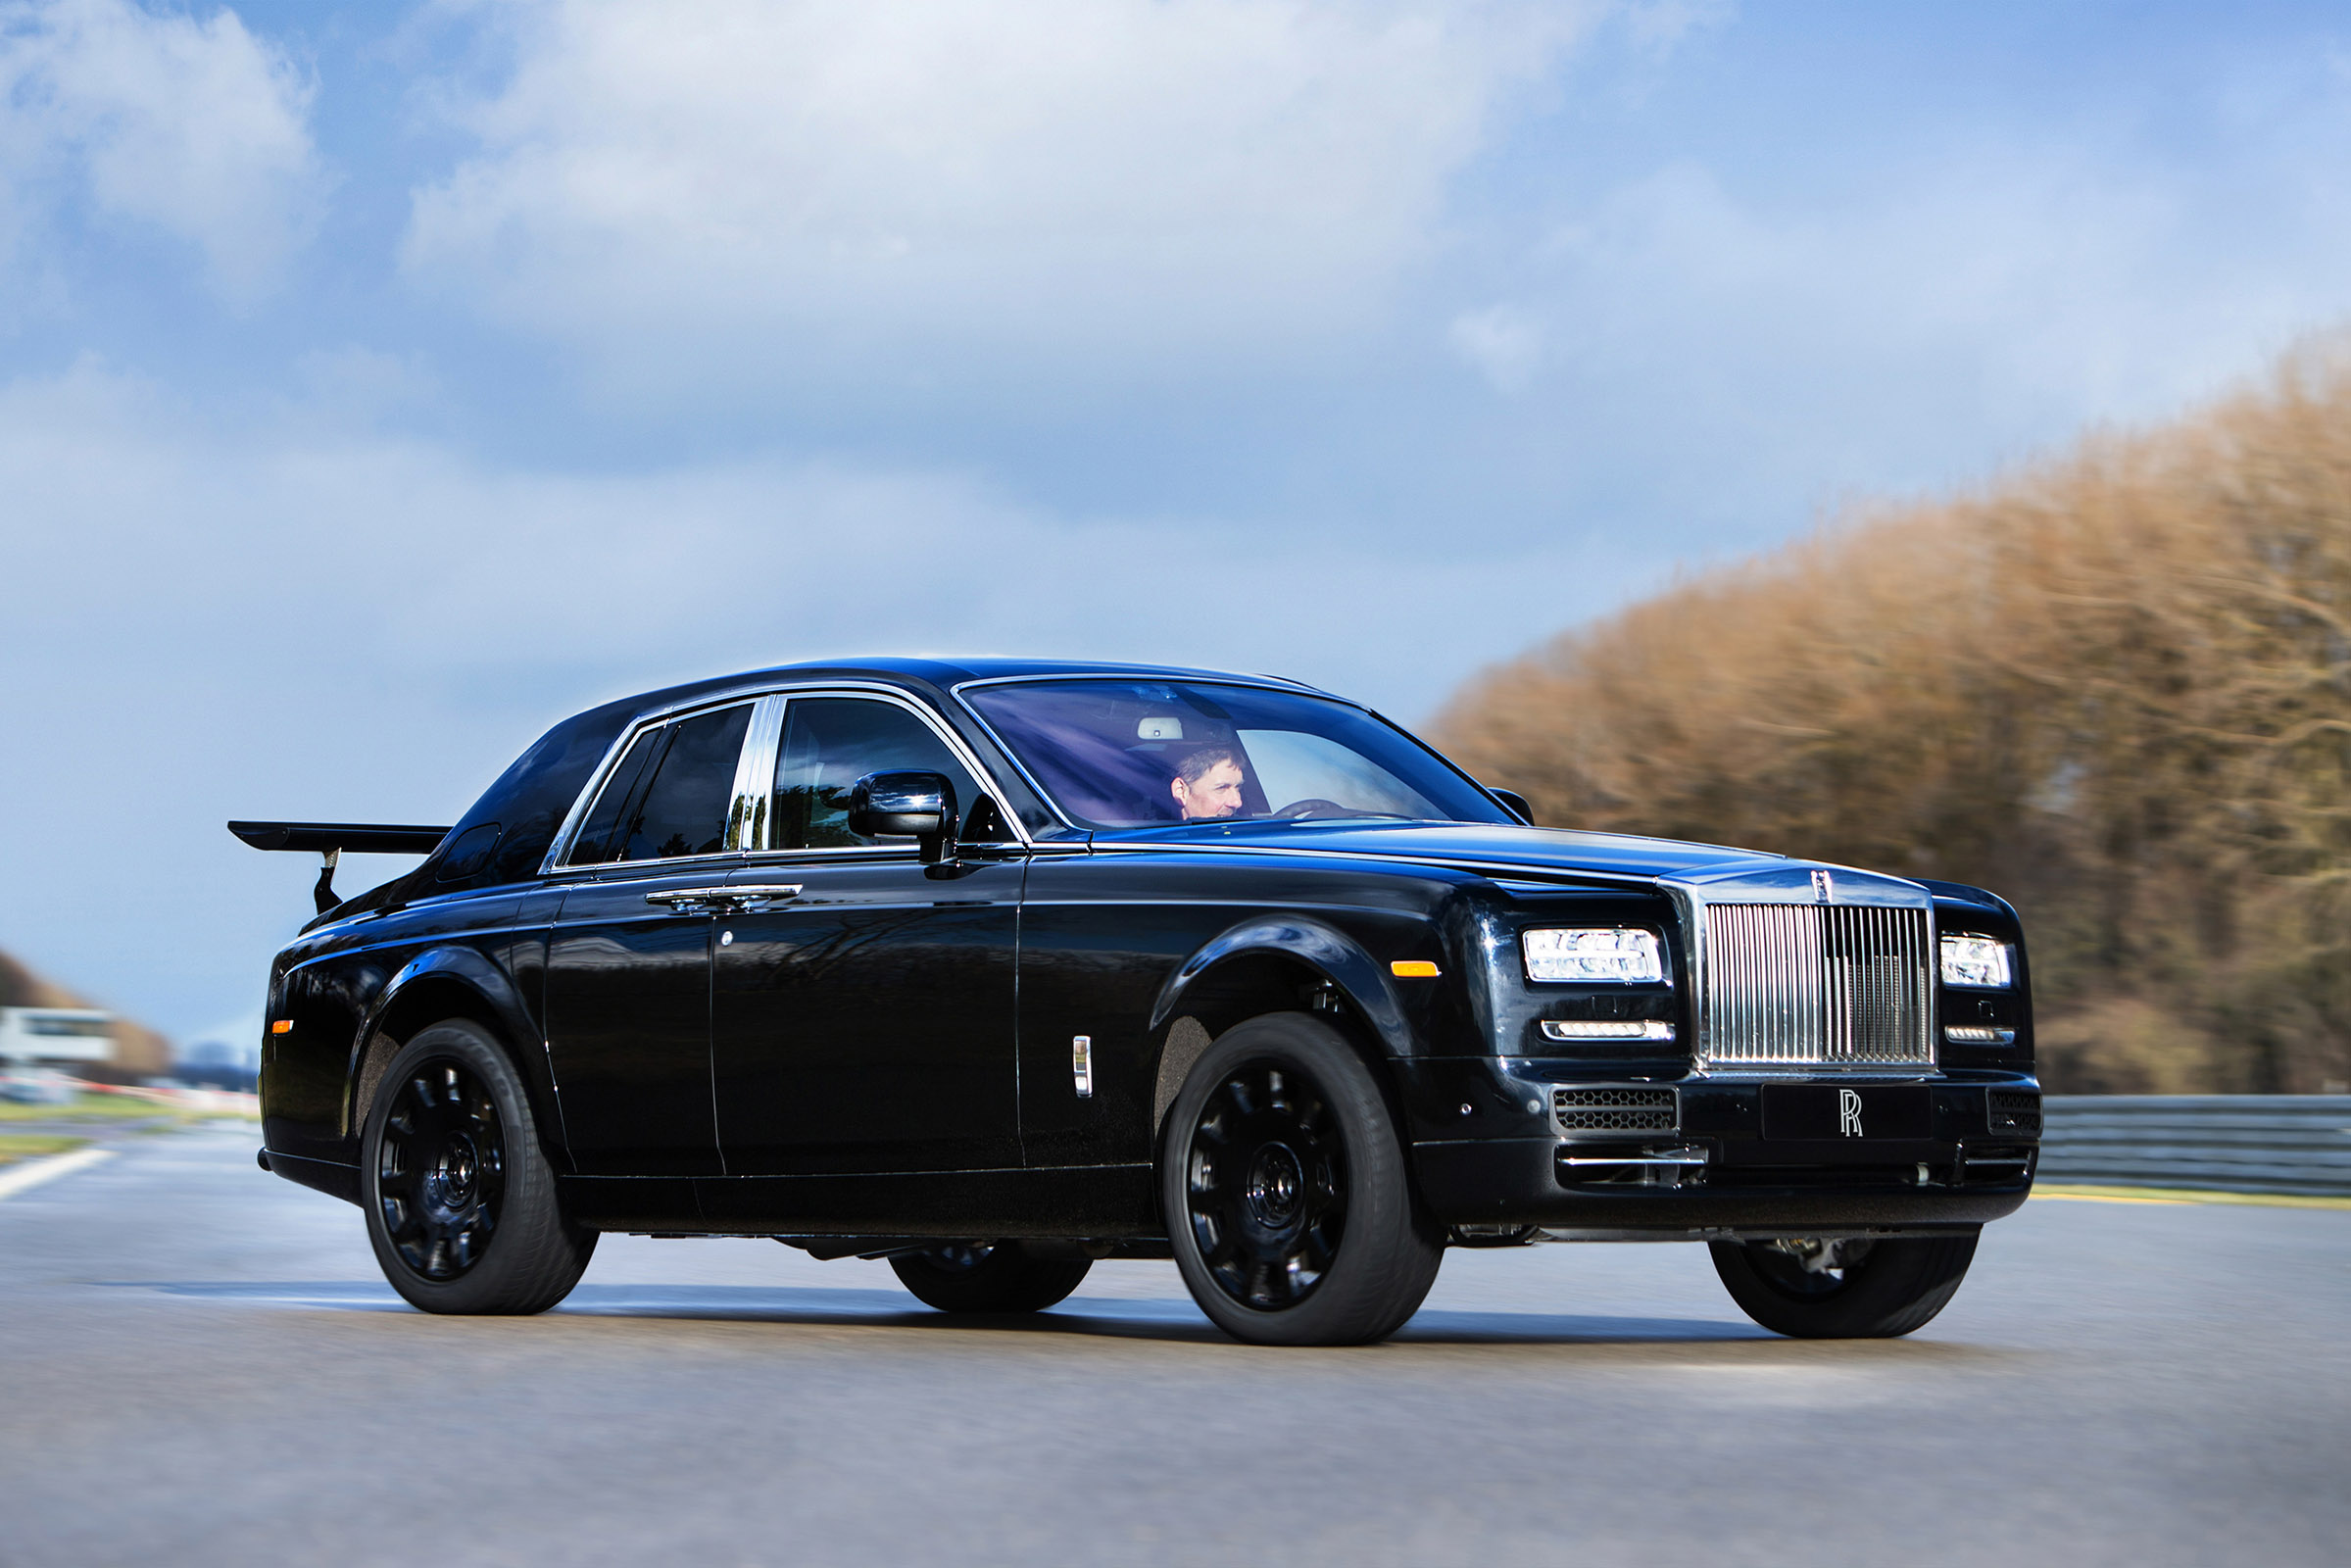 2015 Rolls-Royce Project Cullinan Phantom Series II